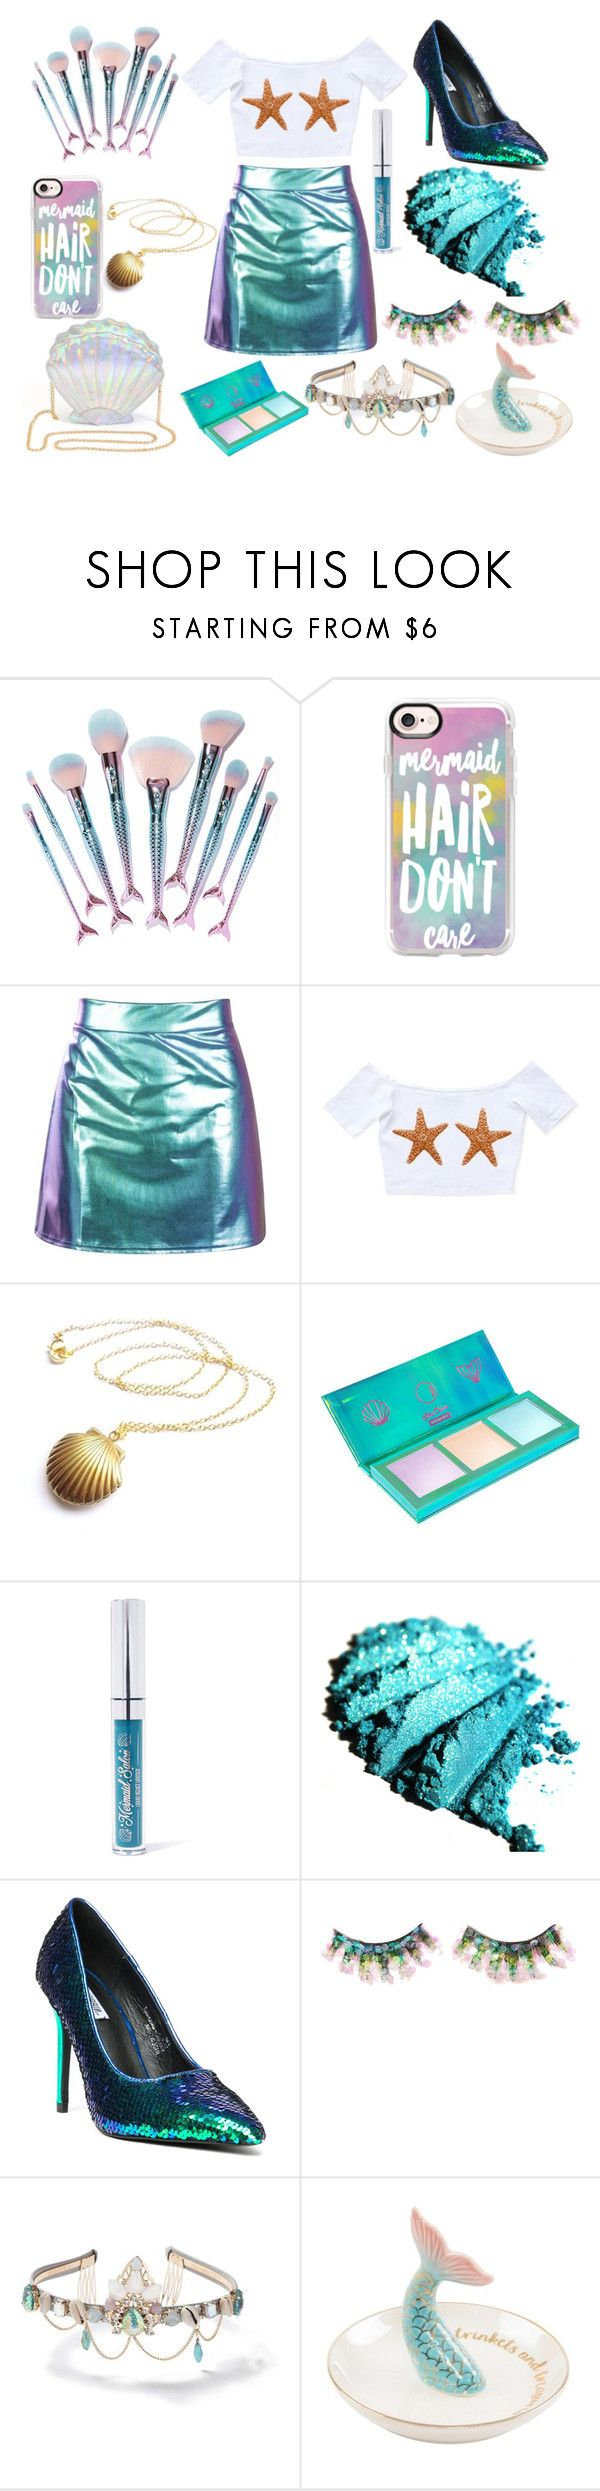 """""""Mermaid"""" by zaneparis on Polyvore featuring Featherella, Casetify, Lime Crime, Mermaid Salon, Cape Robbin, FromNicLove and Miss Selfridge"""